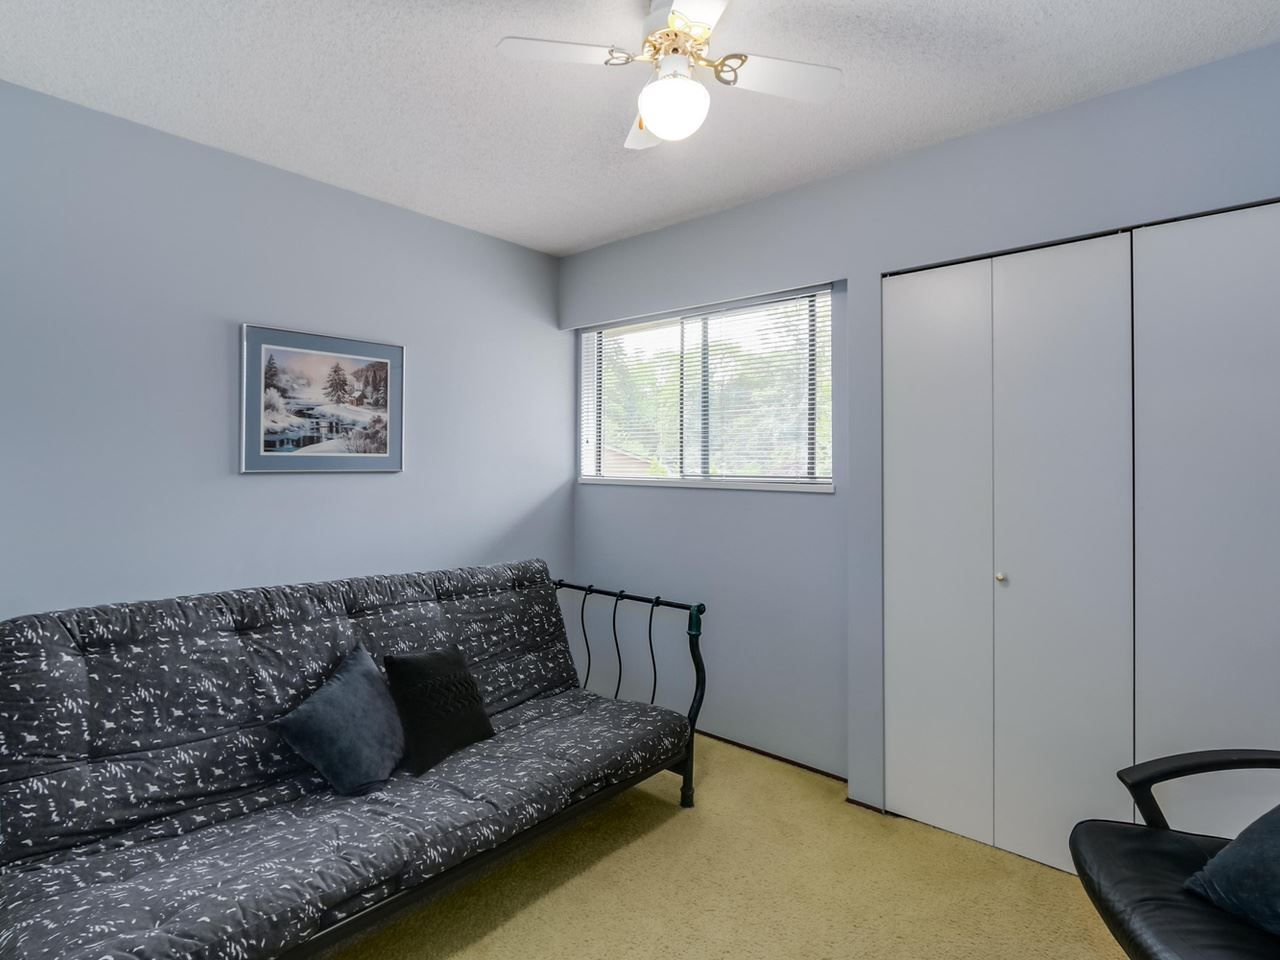 Photo 15: Photos: 4032 AYLING Street in Port Coquitlam: Oxford Heights House for sale : MLS®# R2074528